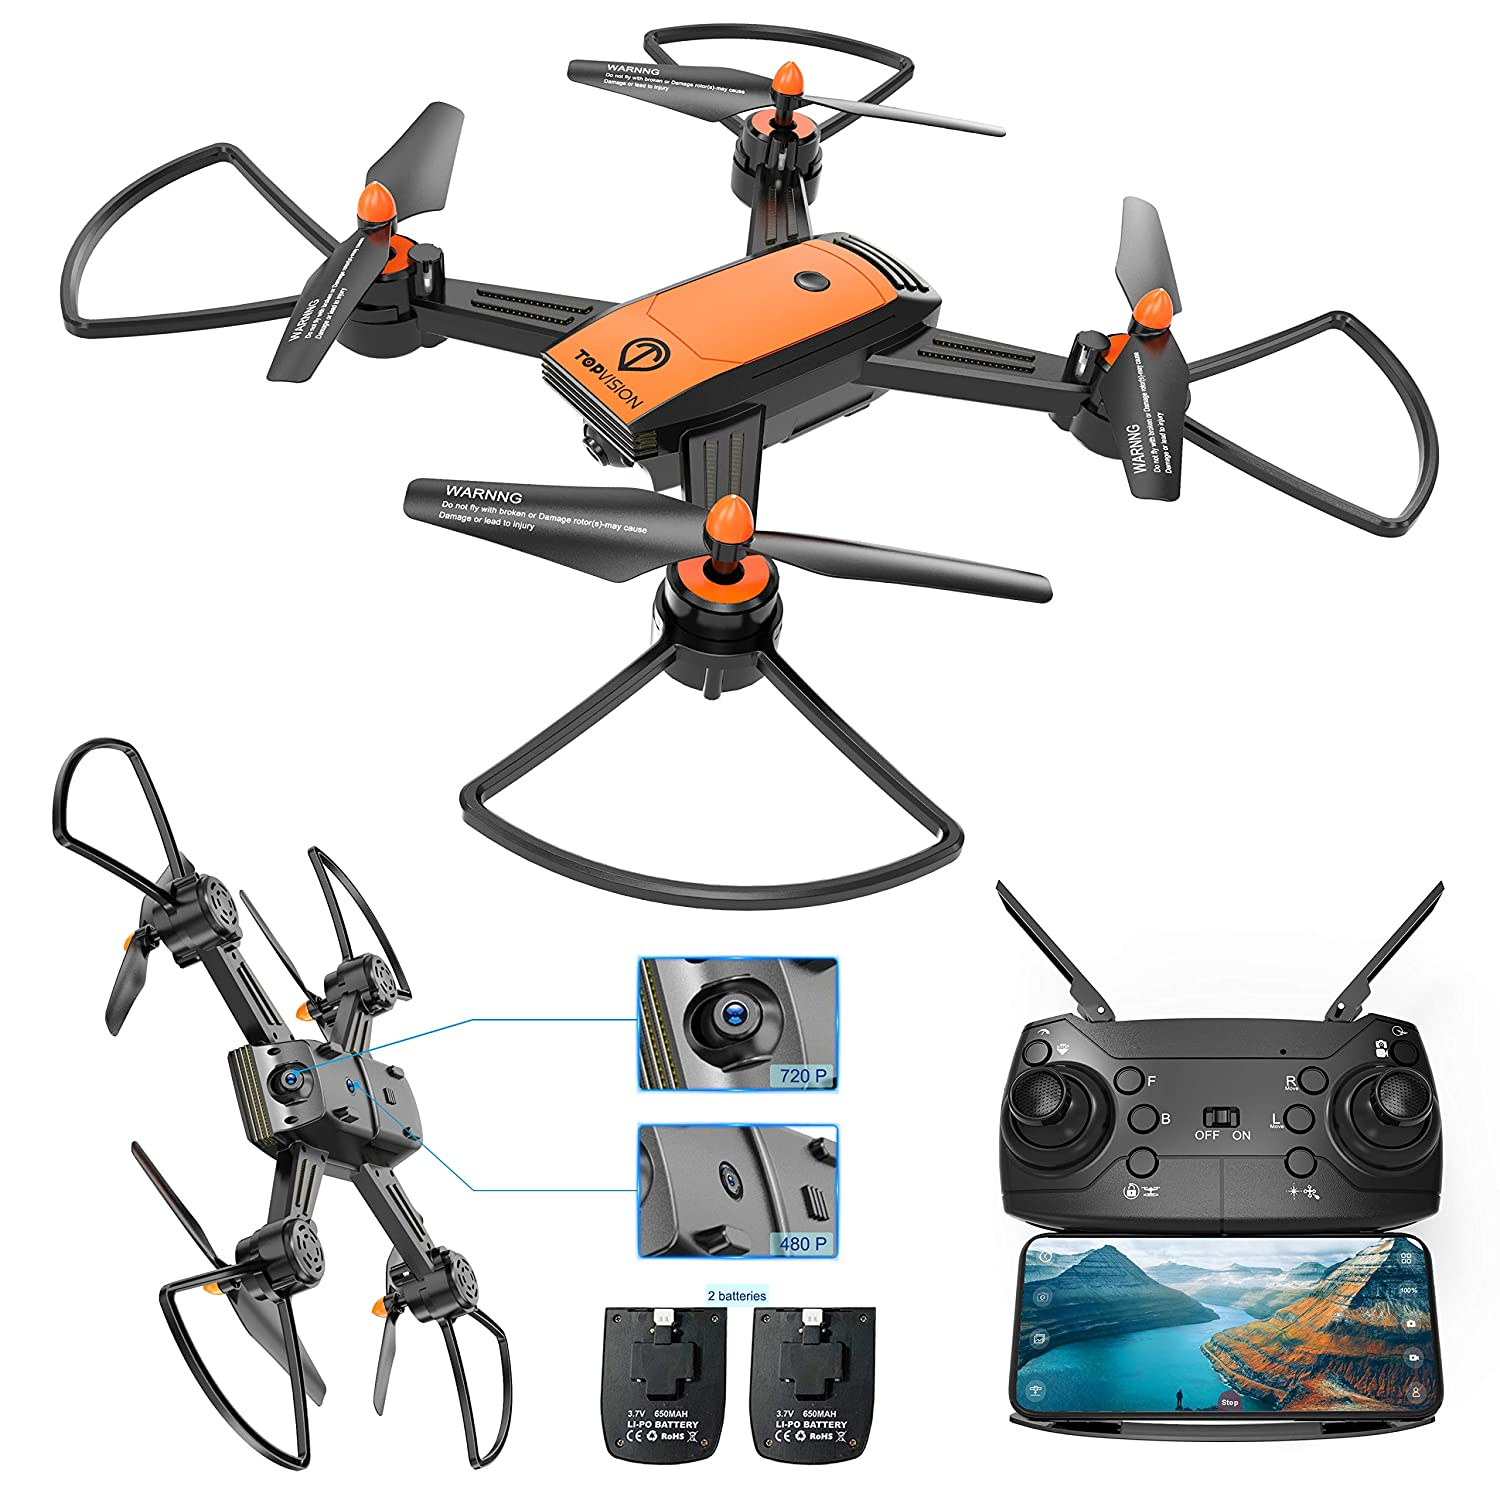 Cameras & Photo Reasonable Drone X Pro 1080p Hd Camera Wifi App Fpv Foldable Wide-angle 4* Batteries Buy One Get One Free